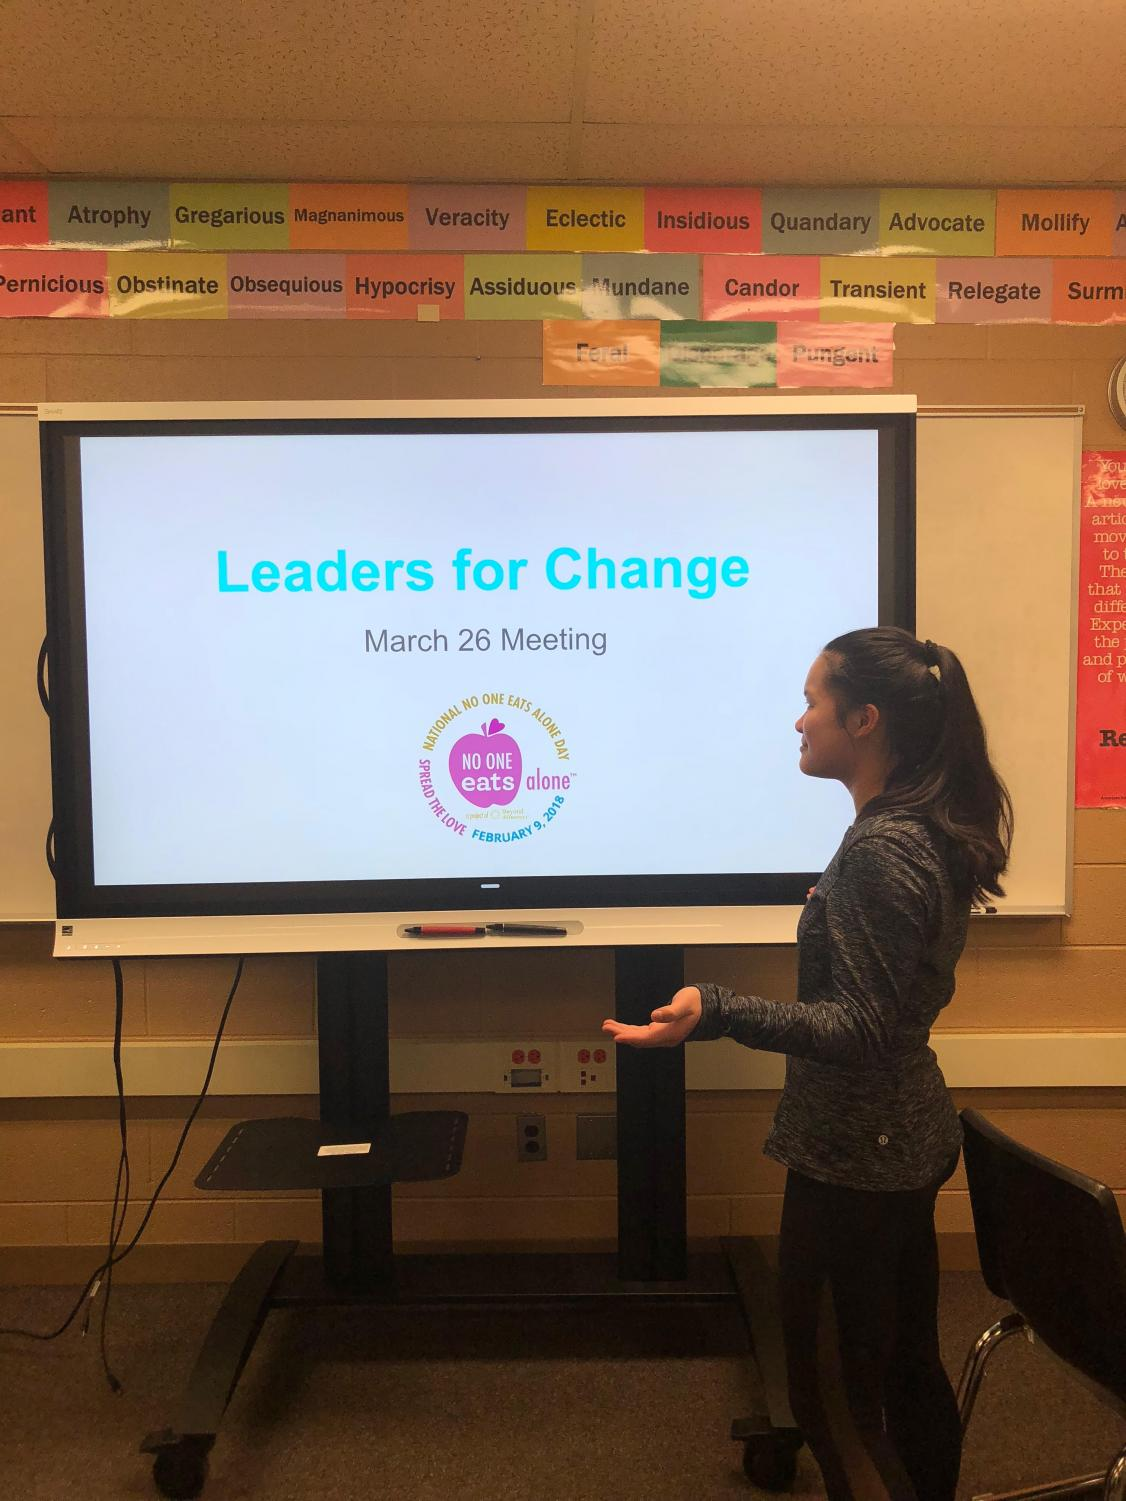 Madison Butchko presenting during a Leaders for Change meeting.